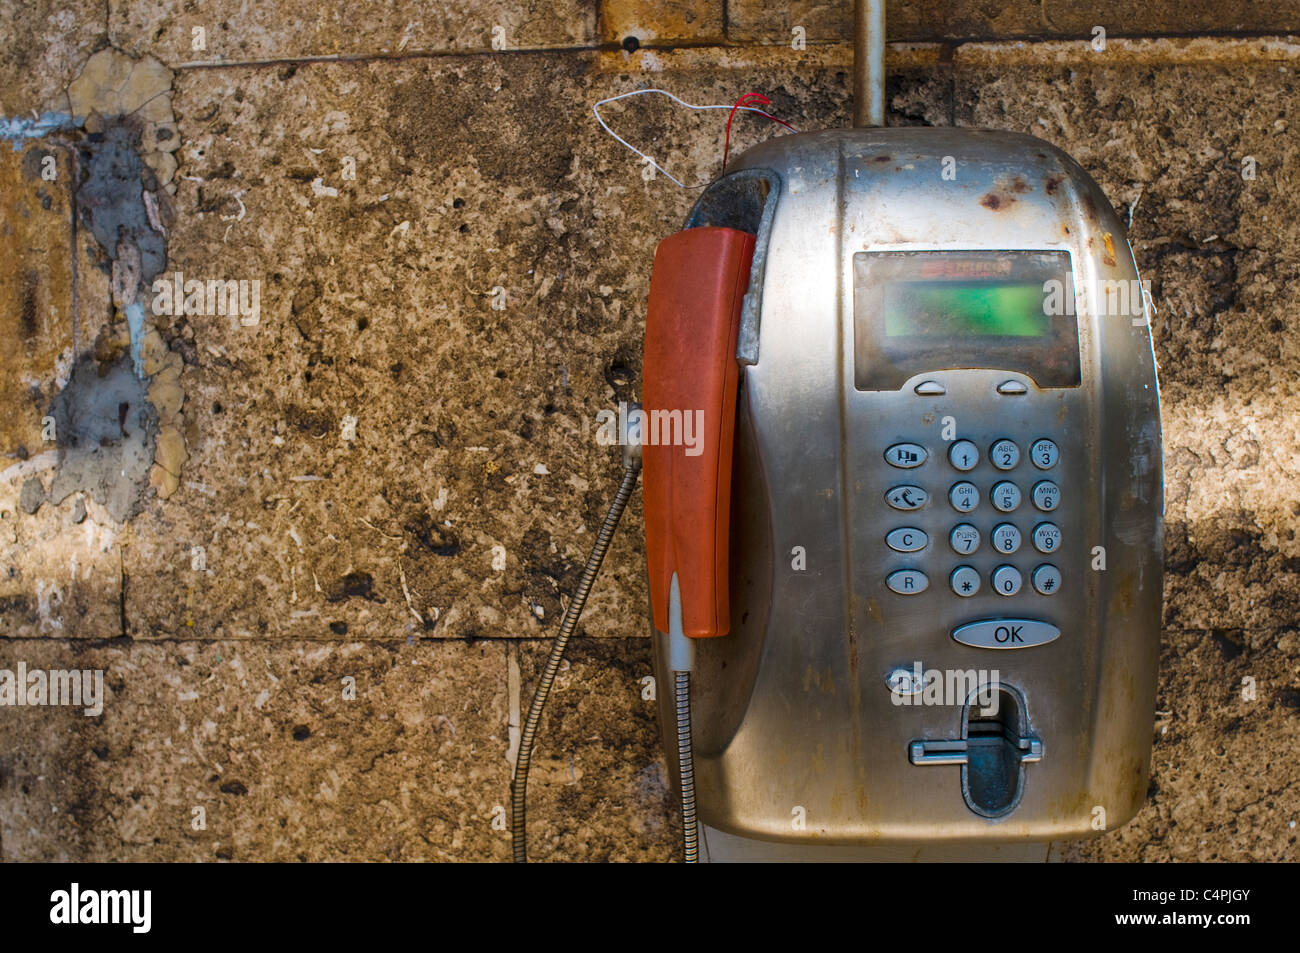 Payphone, Cinque Terre, Italy - Stock Image